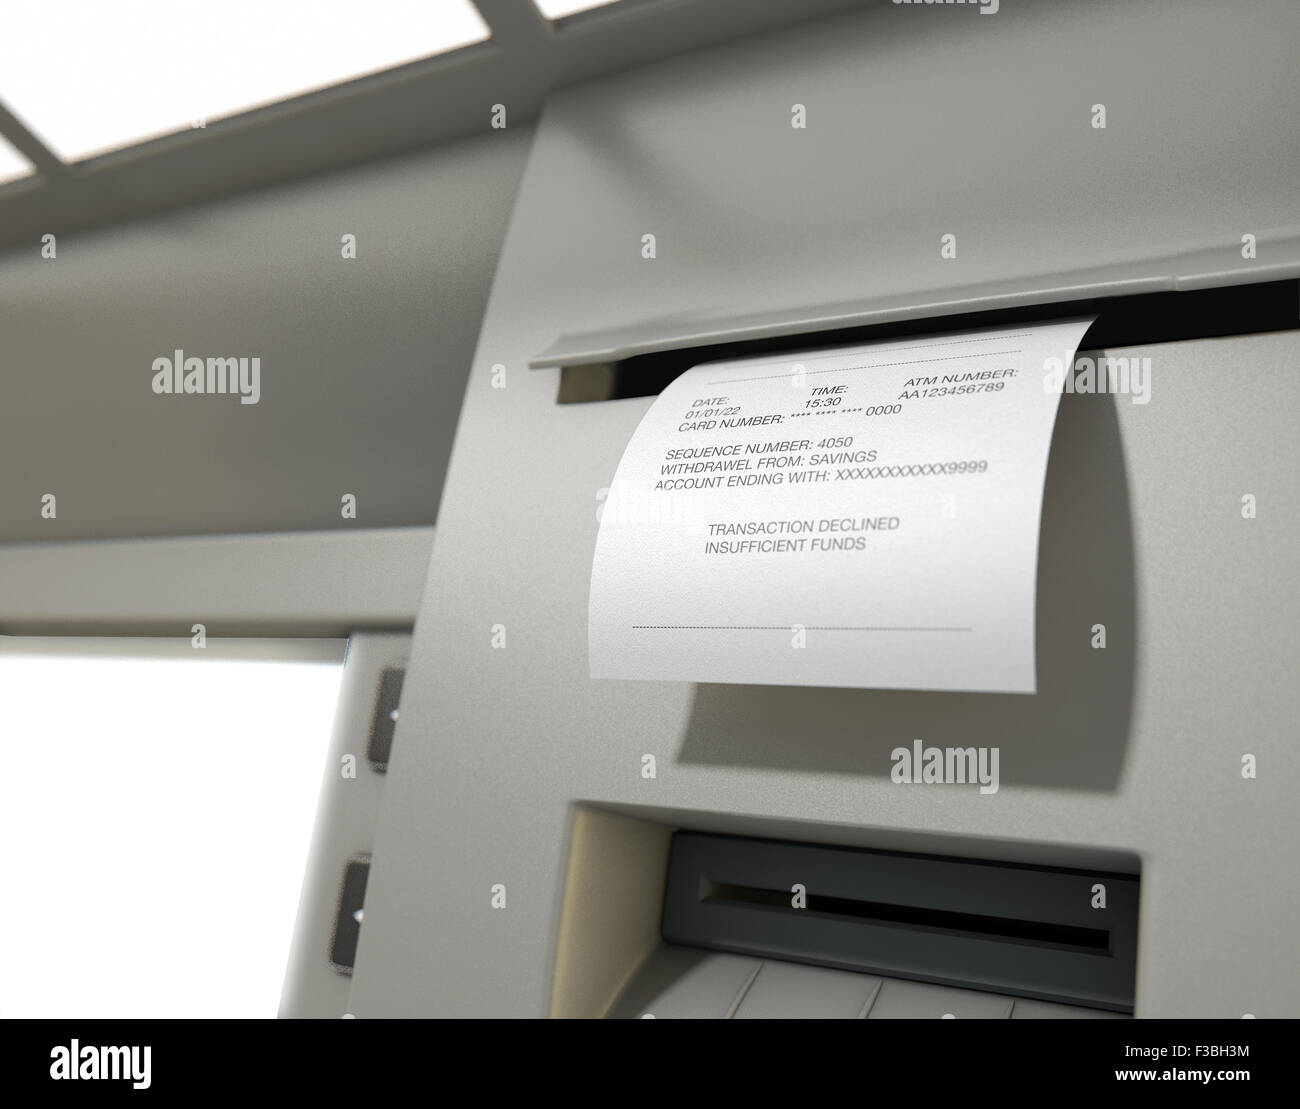 A closeup view of the slip printing section of an atm with a